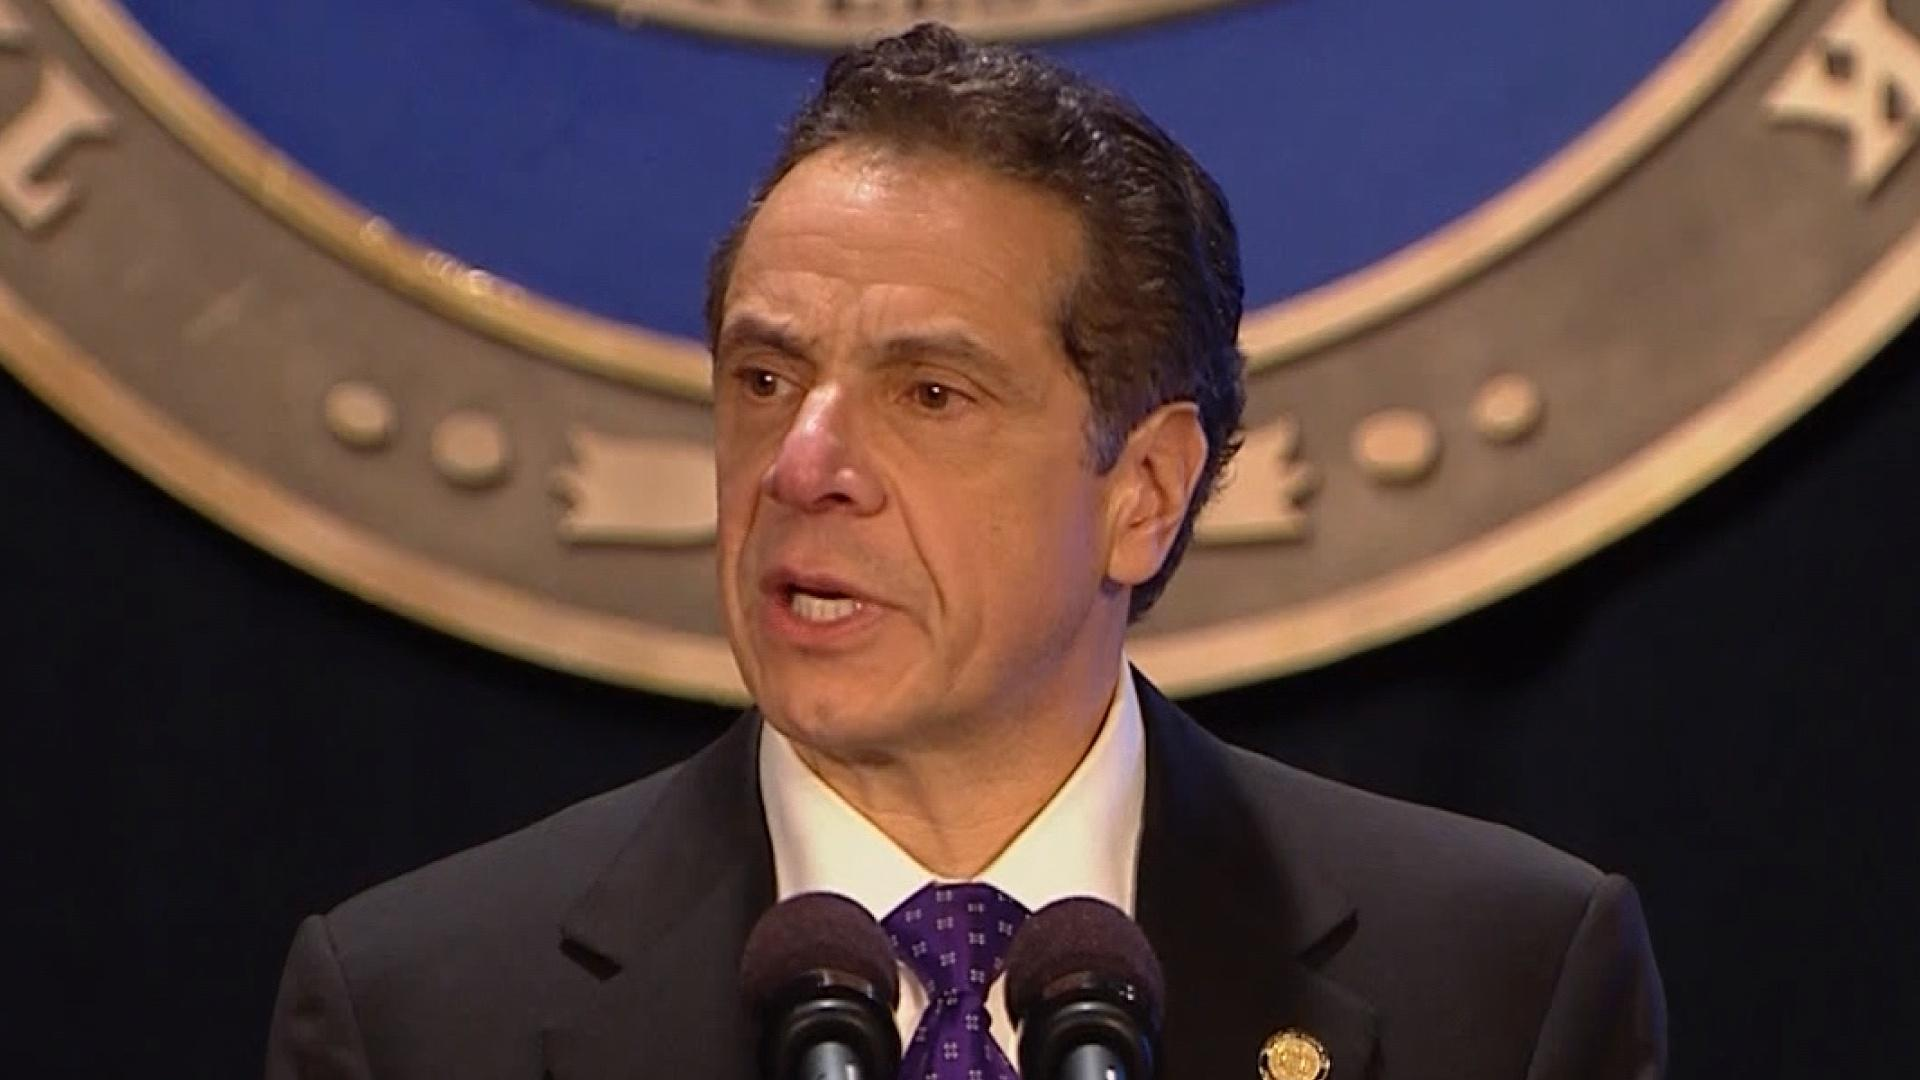 Governor Andrew Cuomo's 2018 State of the State Address